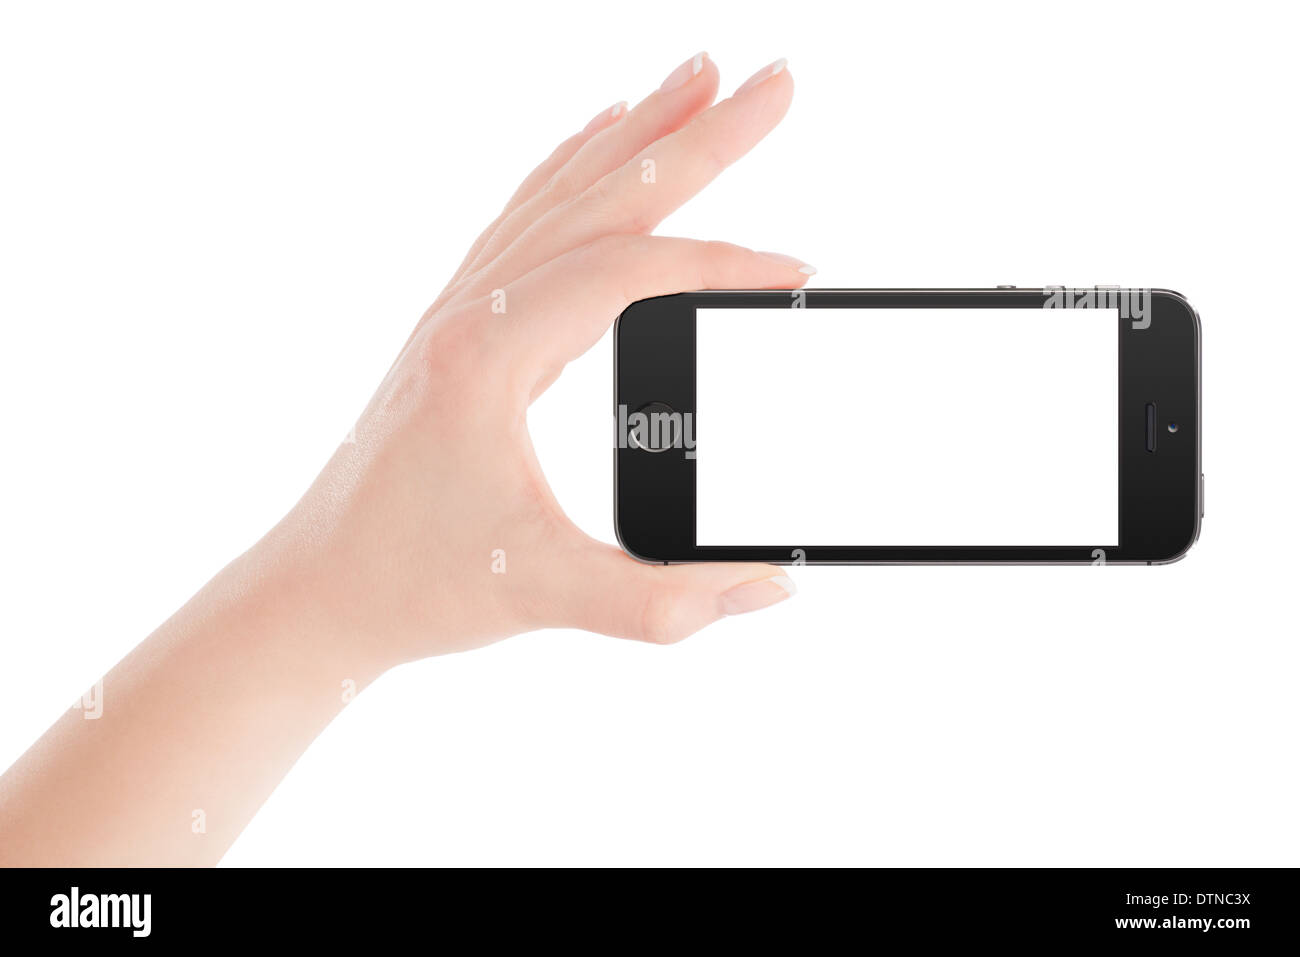 Female hand holding black modern smart phone with blank screen in landscape orientation. Isolated on white background. - Stock Image